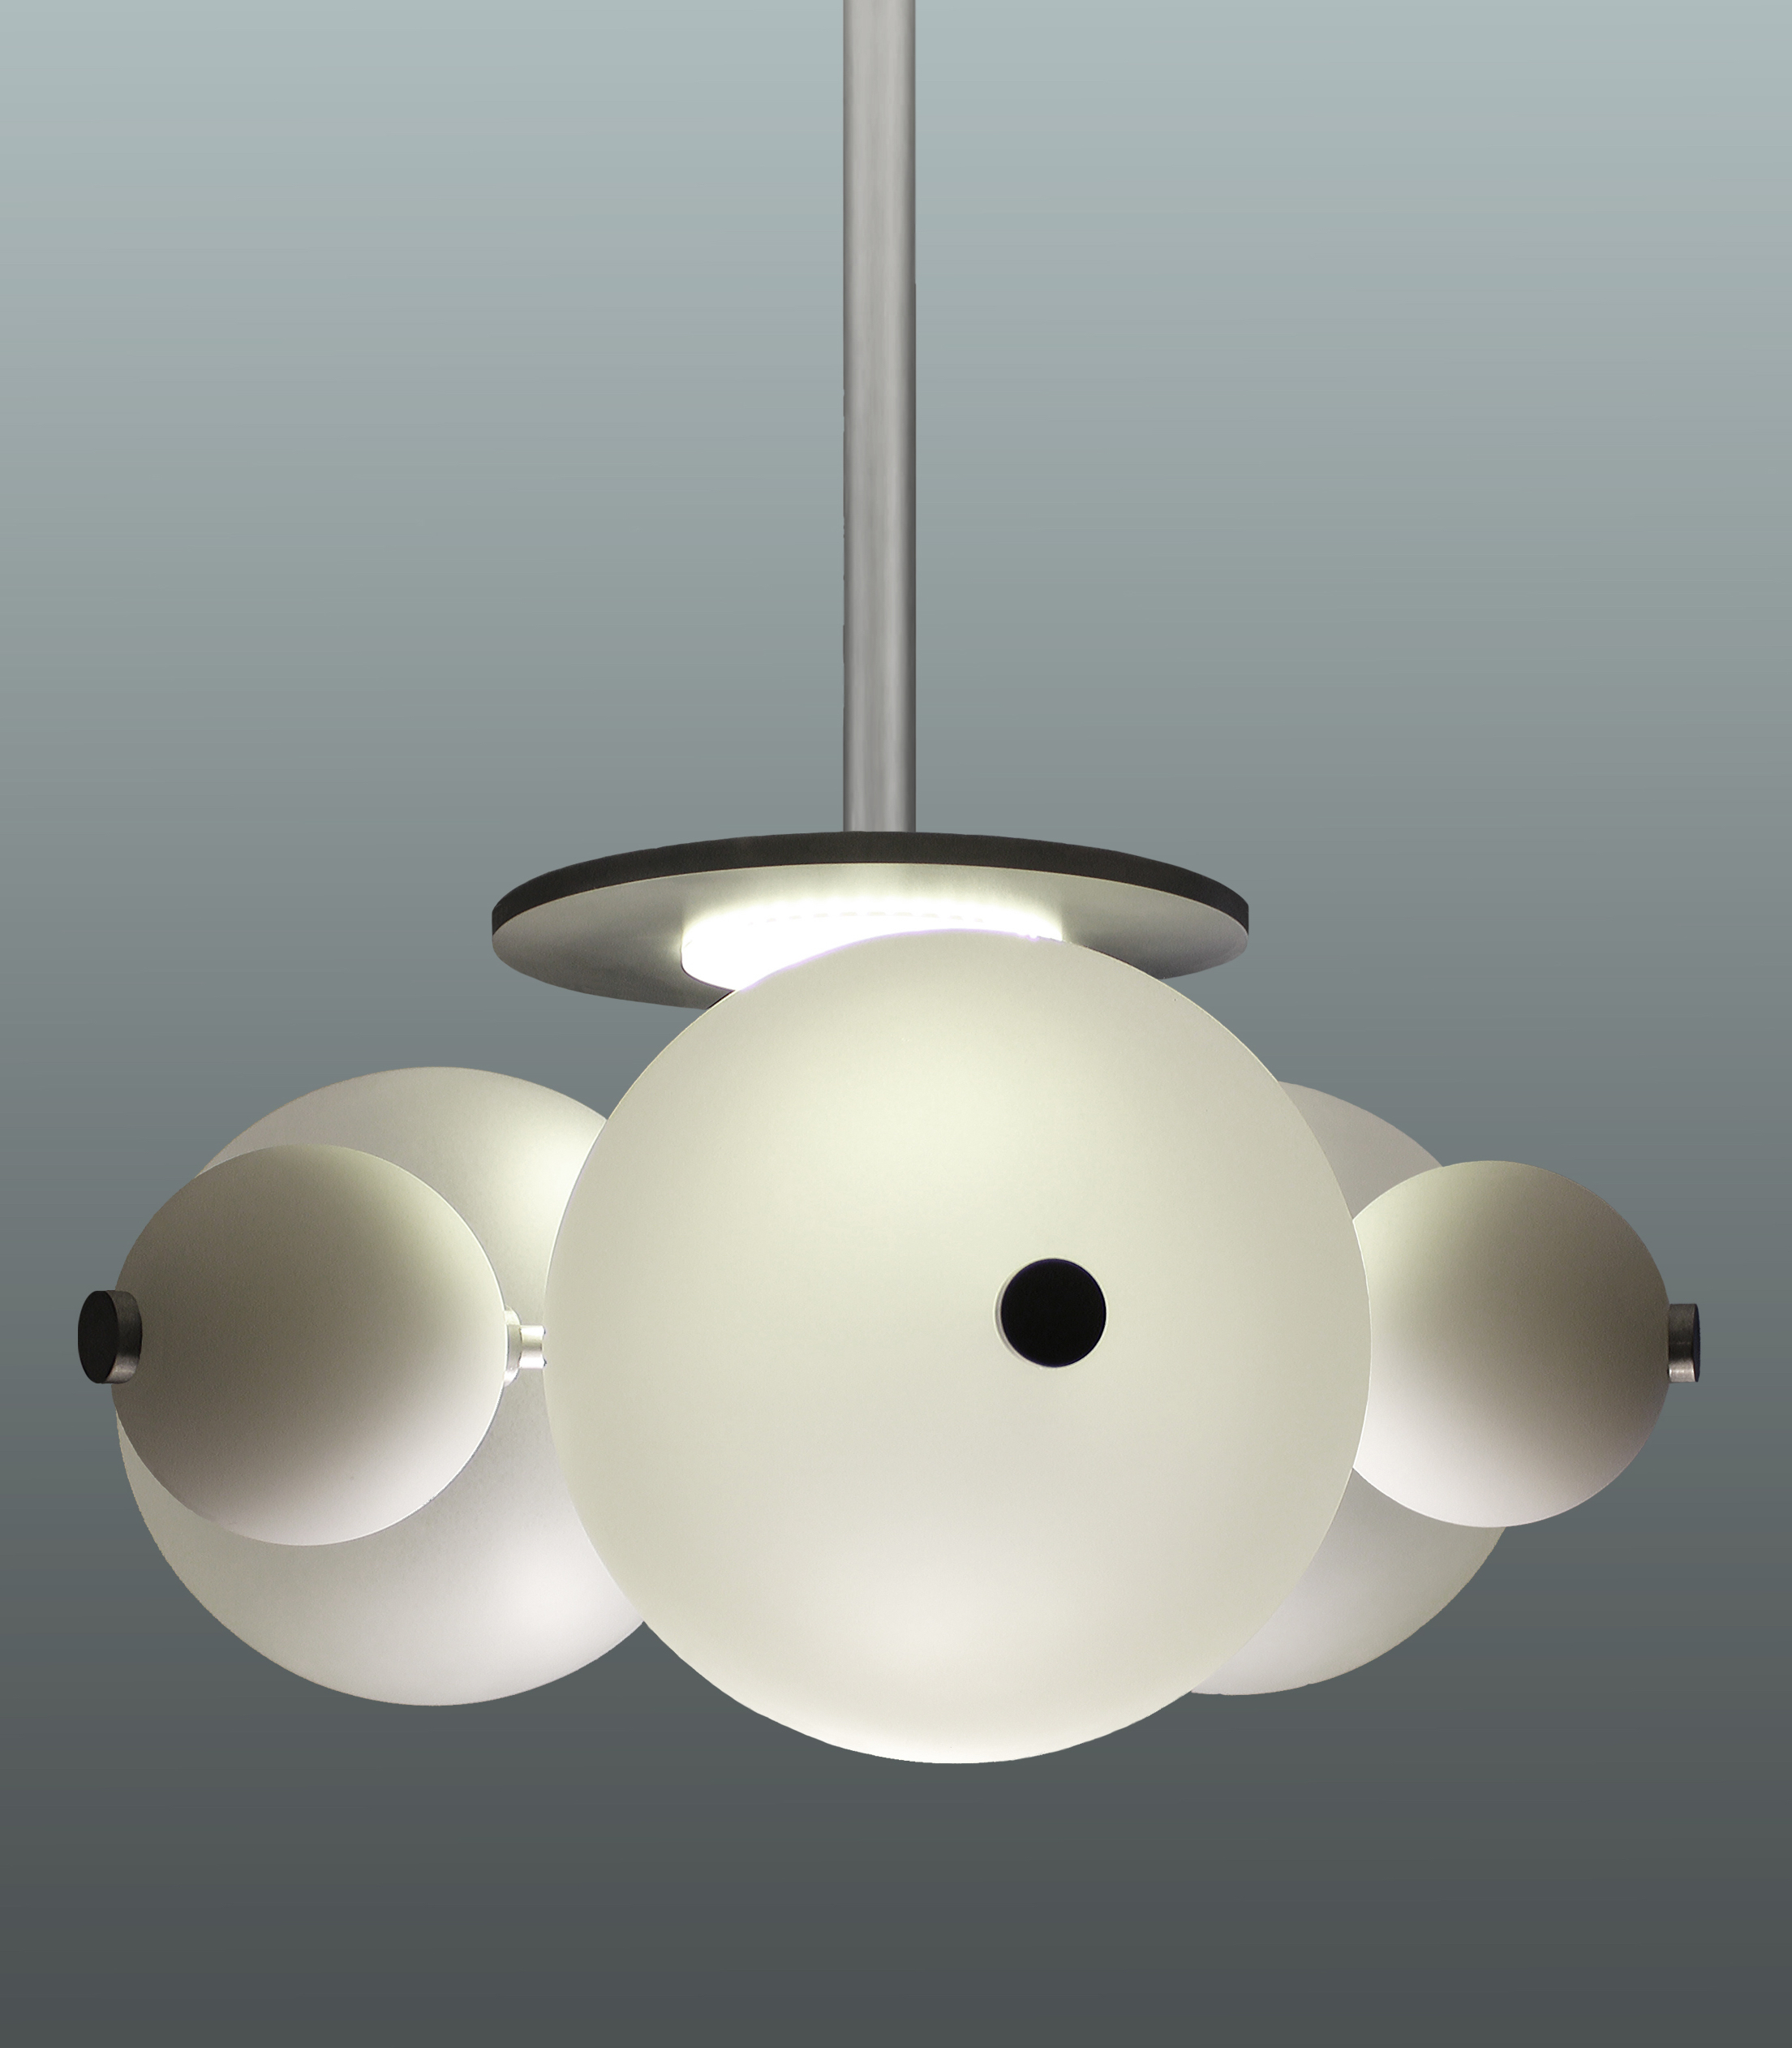 Lighting buoyant nyc palladium chandelier and ceiling aloadofball Image collections